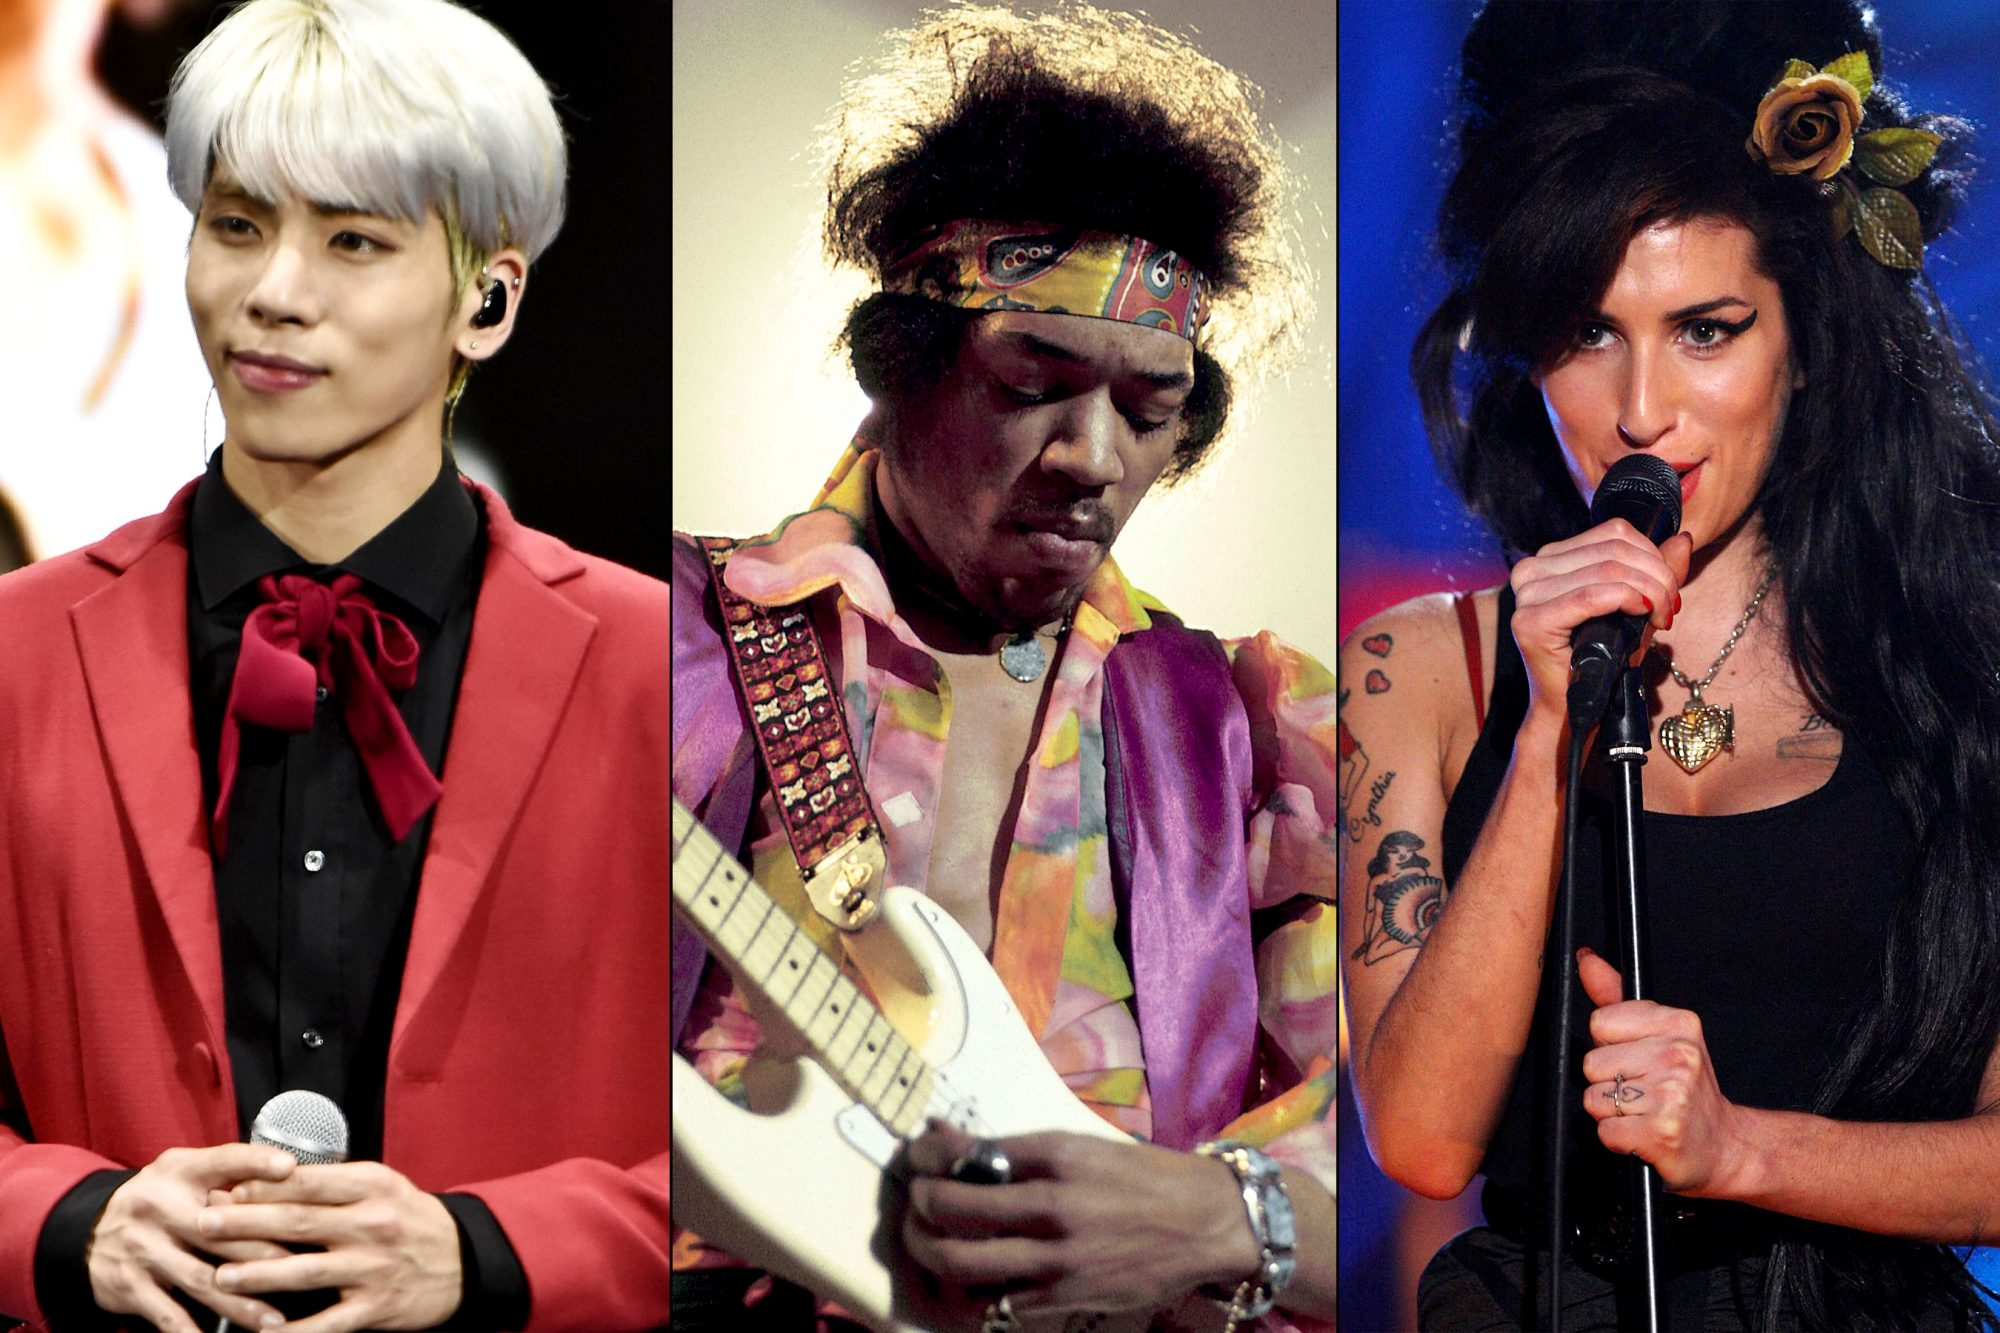 GALLERY: Musicians Who Died at 27